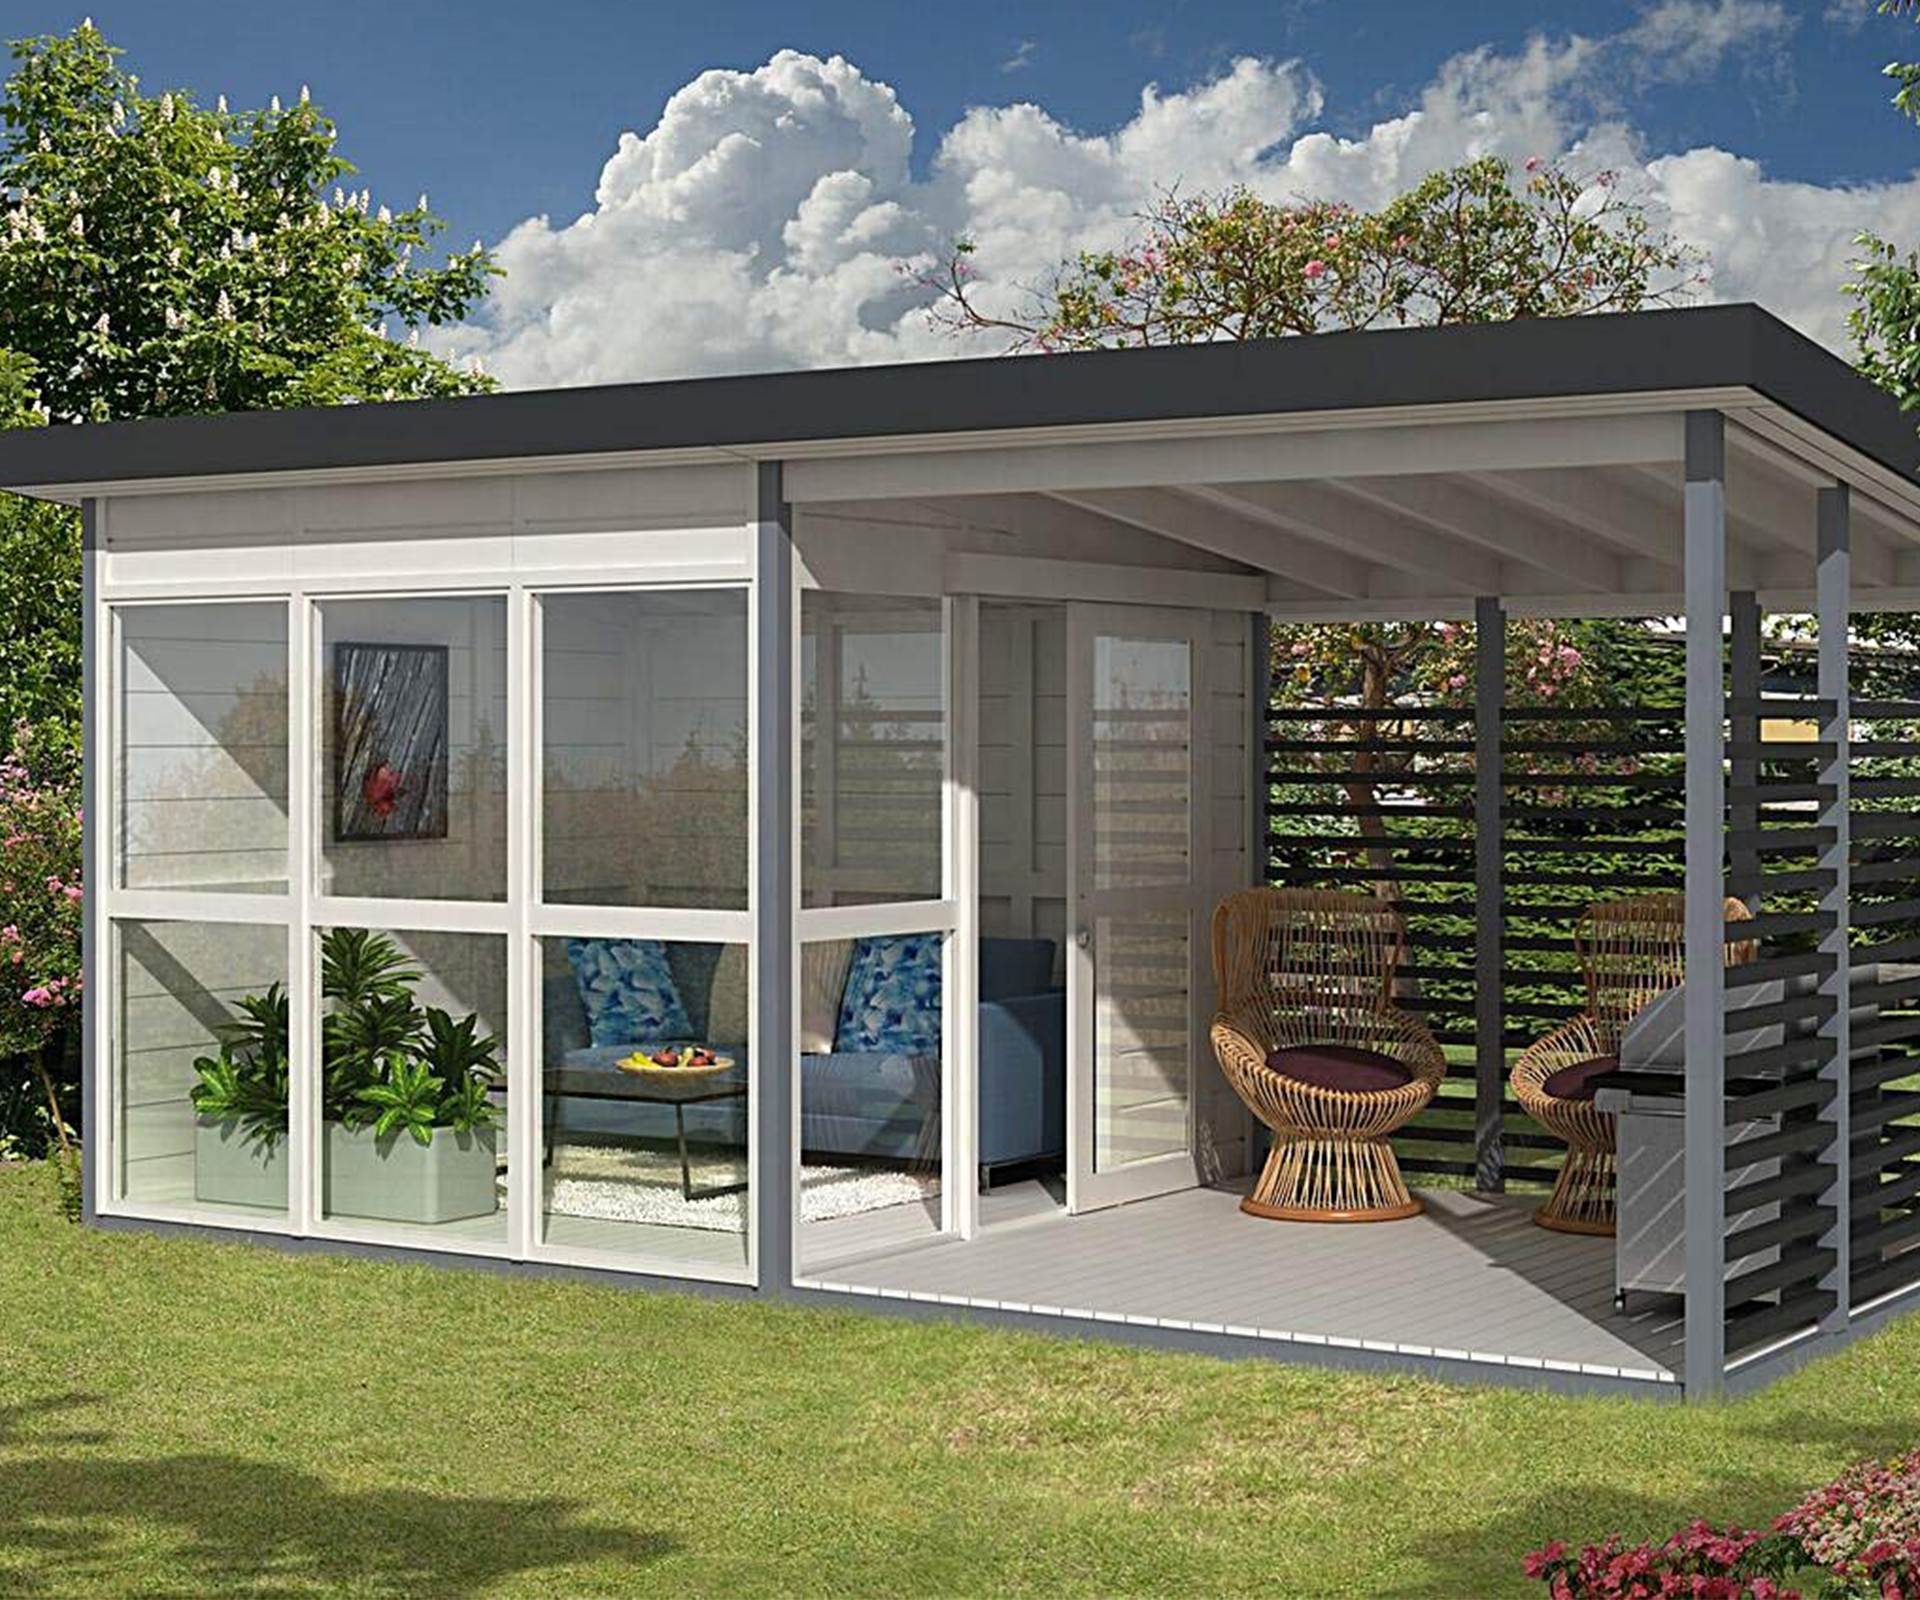 Amazon Is Selling A Flatpack Tiny House You Can Build